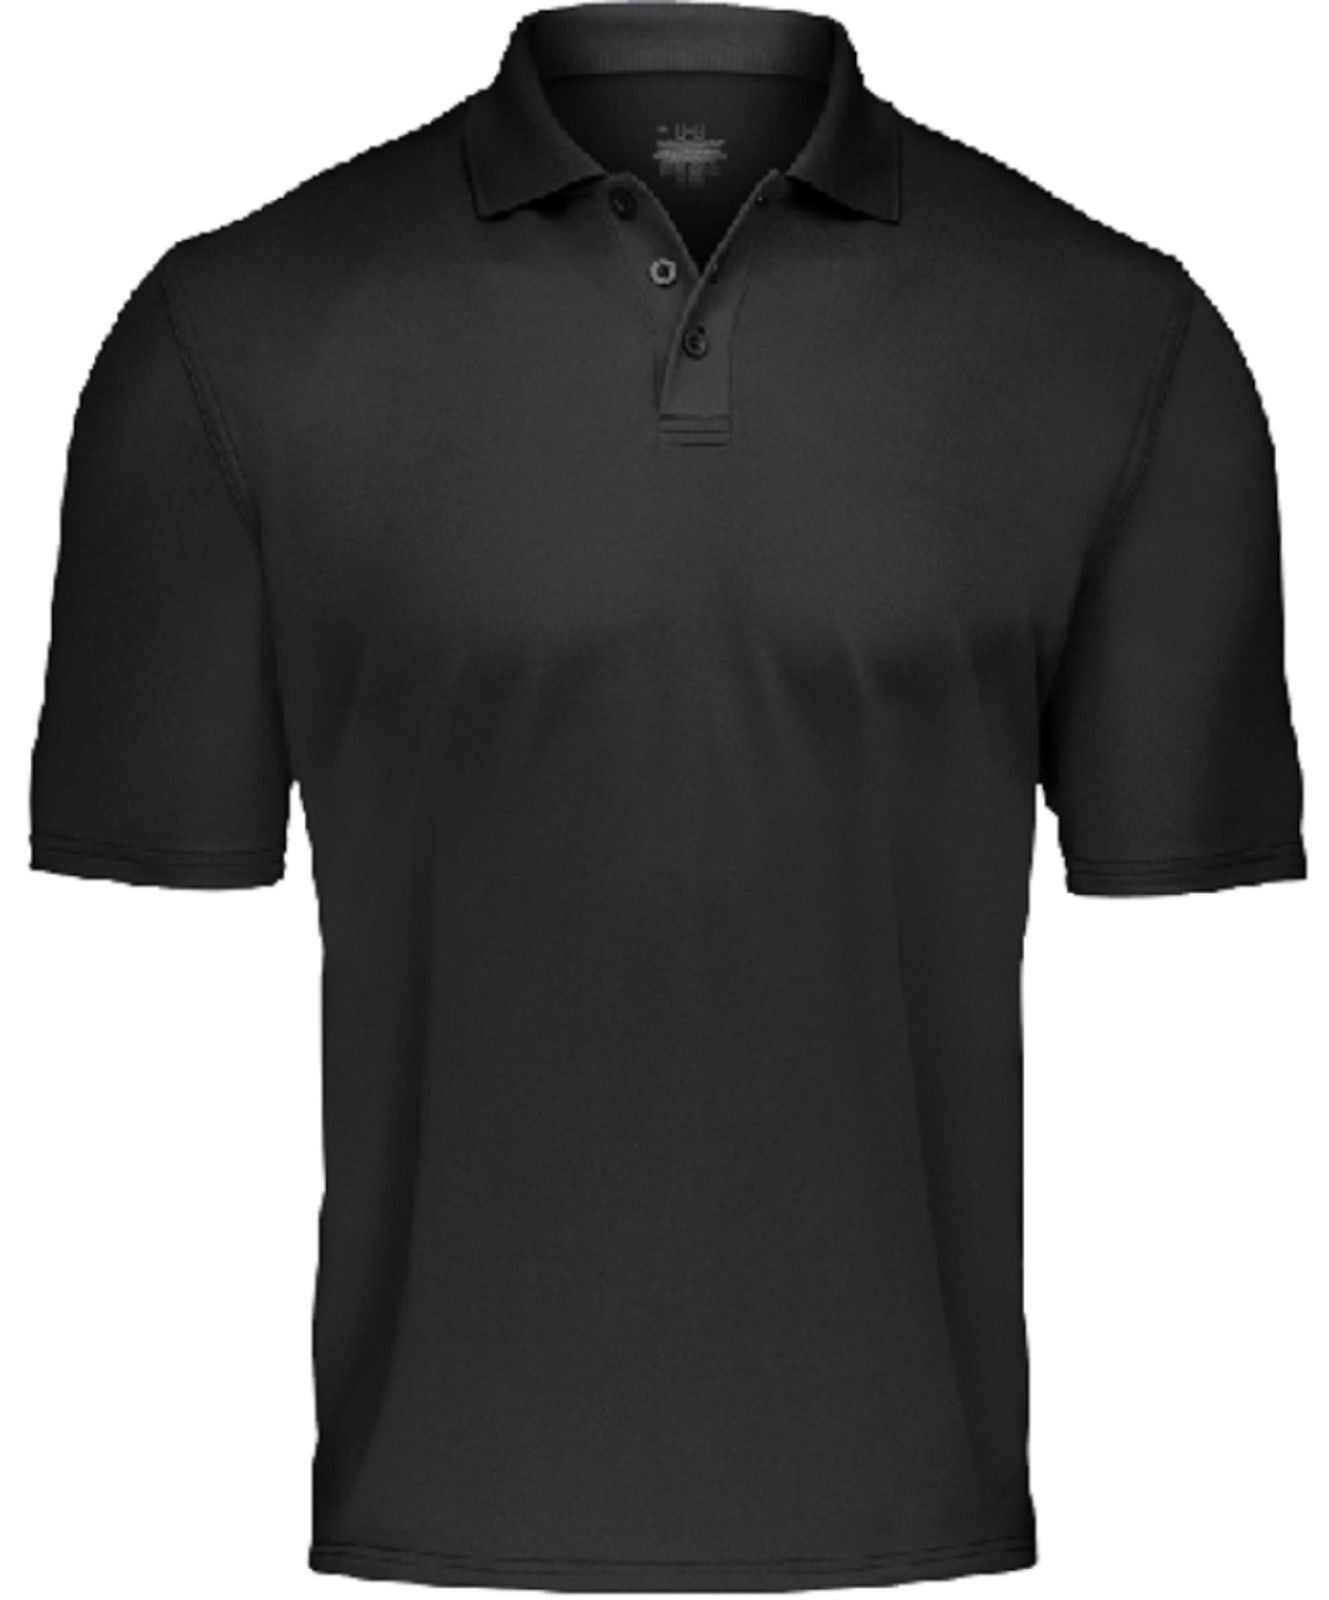 Under Armour Tactical Range Polo Shirt Mens Loose Fit Collared